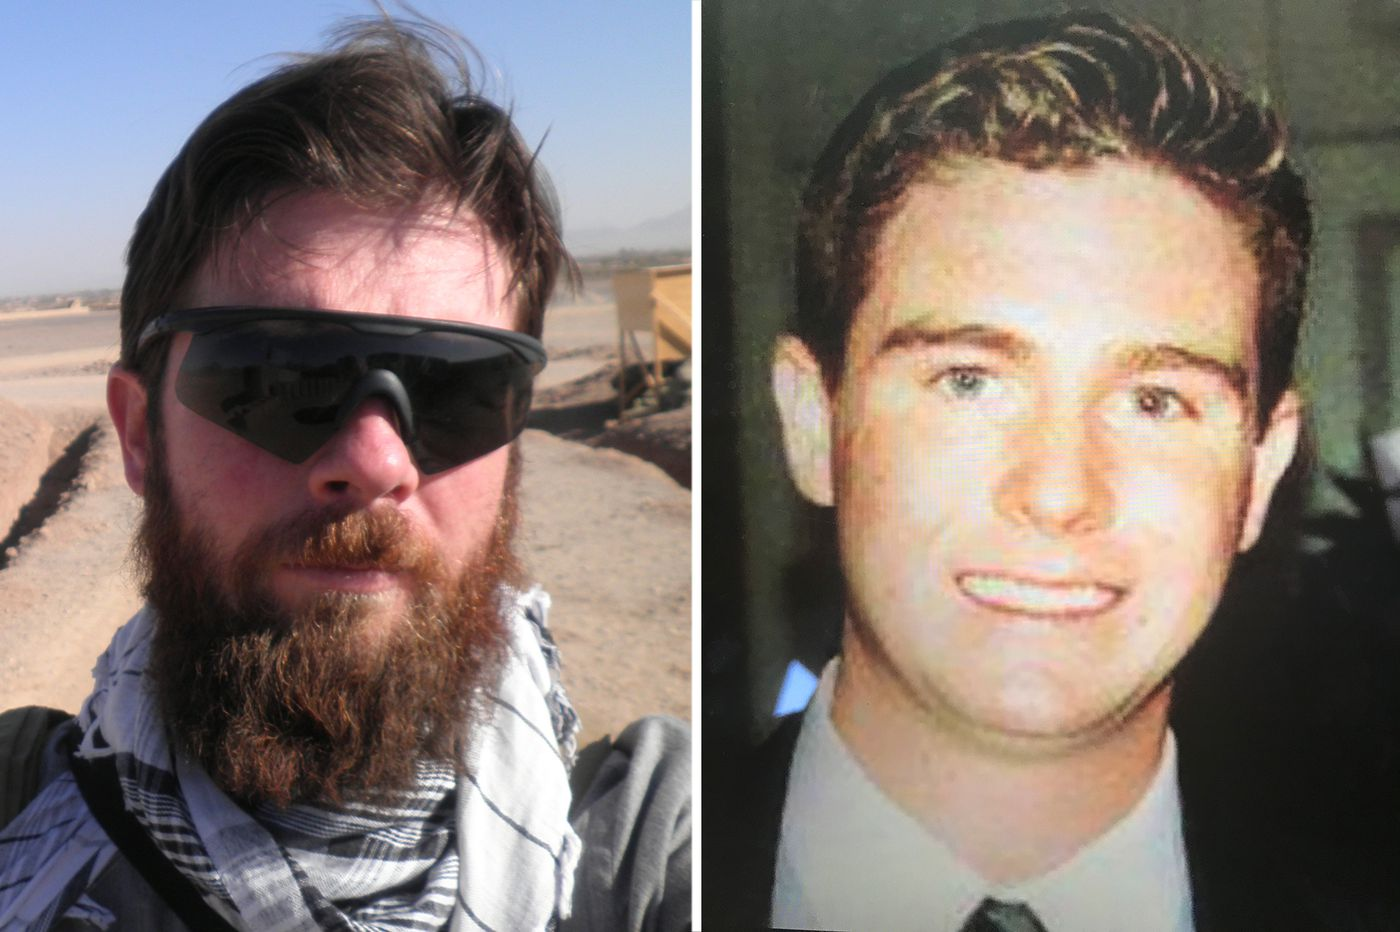 After losing a brother, Joe Quinn thought war would save him – now he's saving other veterans | Mike Newall